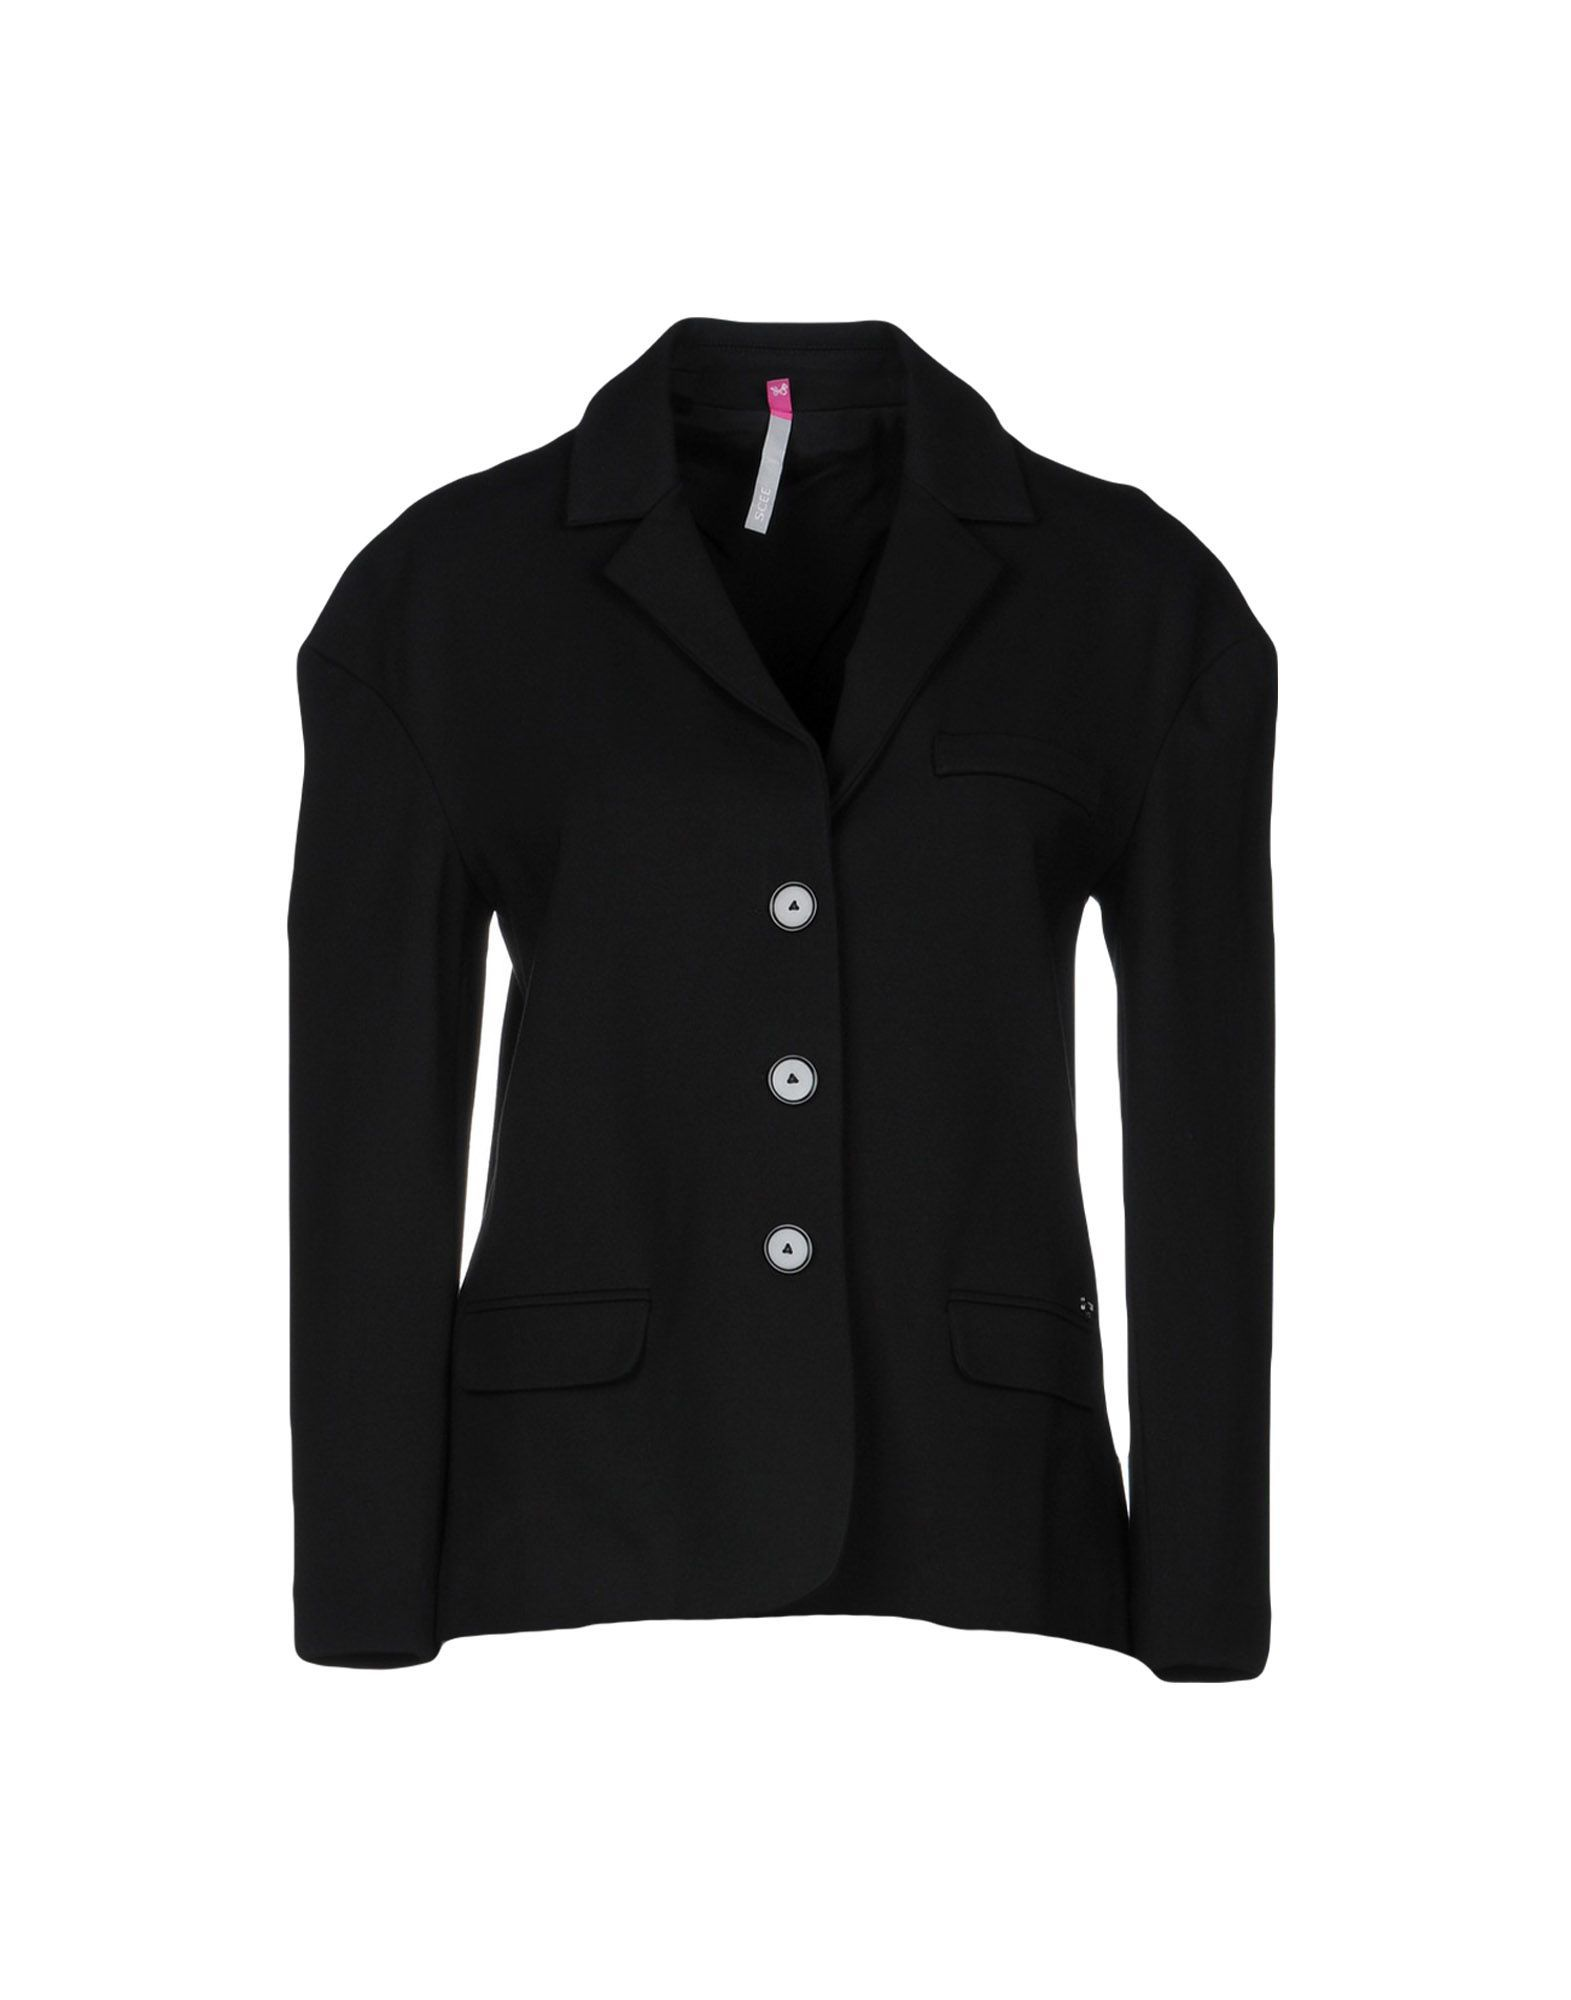 Scee By Twinset Black Single Breasted Jacket